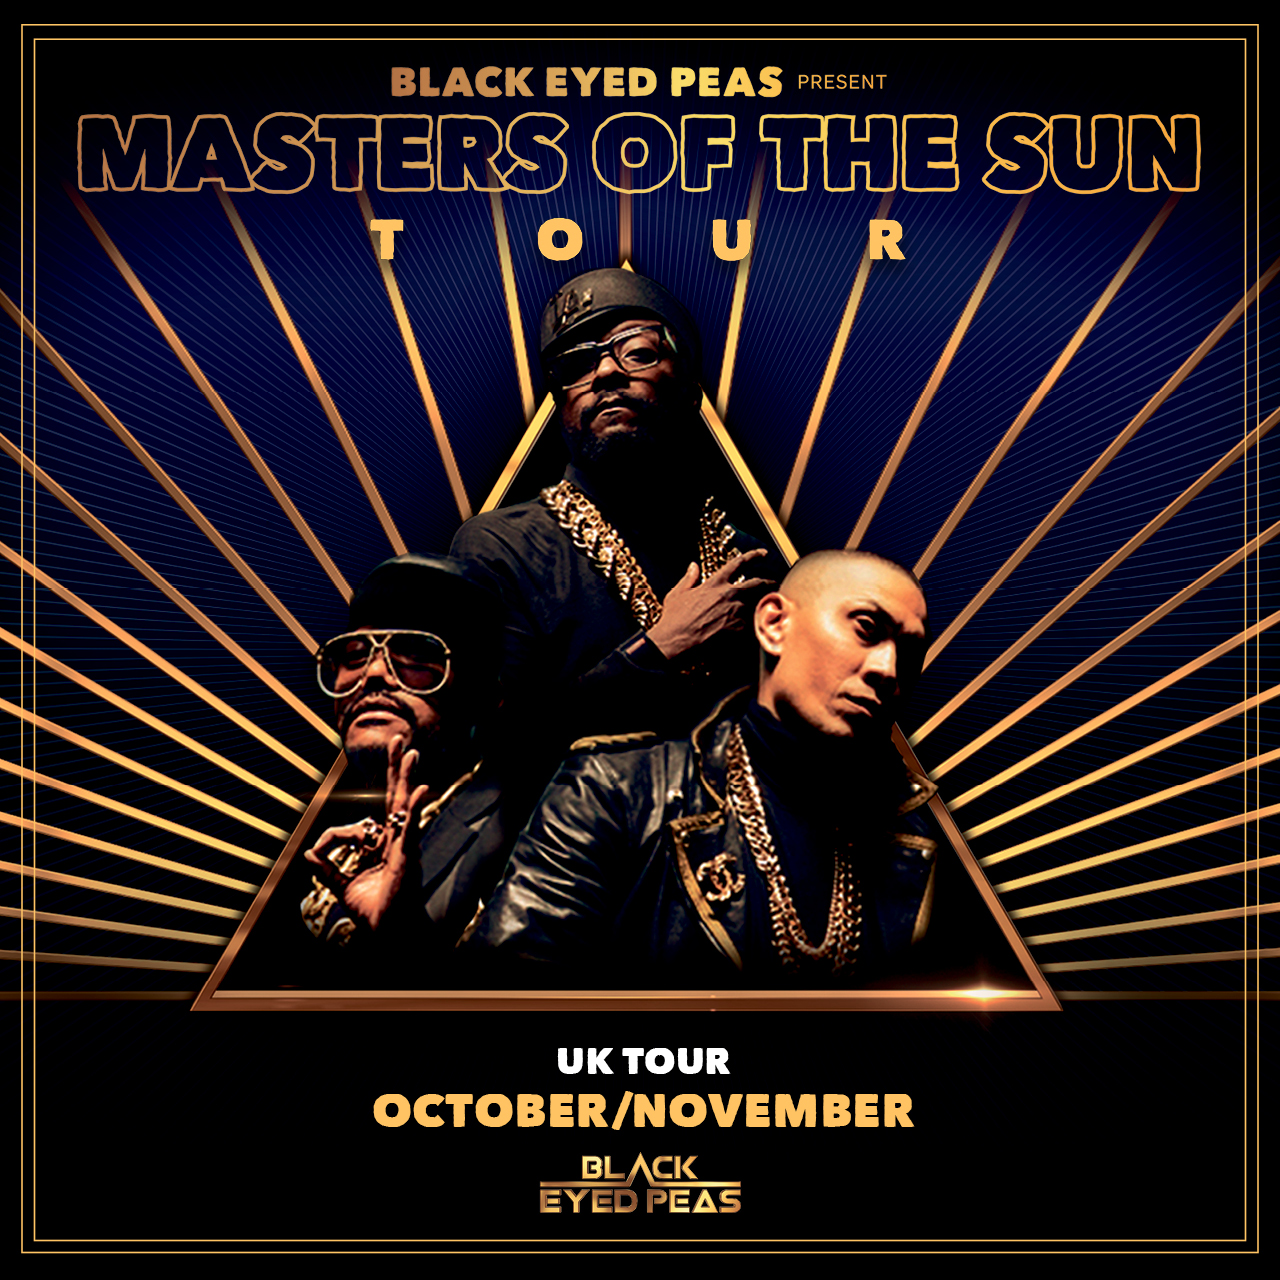 Black Eyed Peas Masters of the Sun